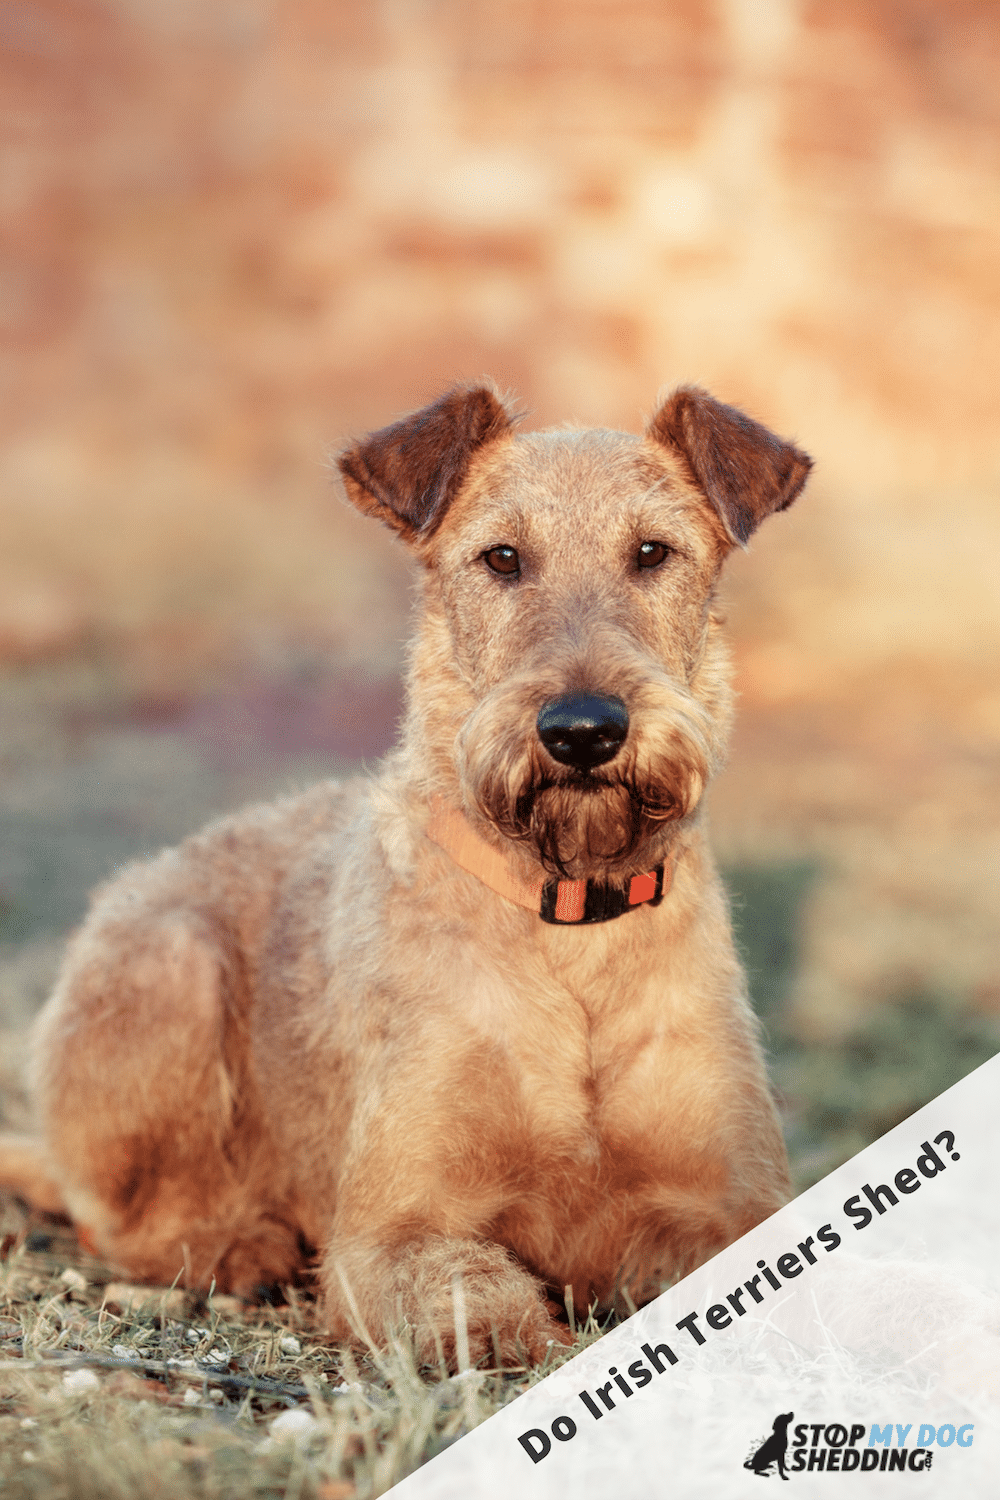 Irish Terrier Shedding (All You Need to Know)